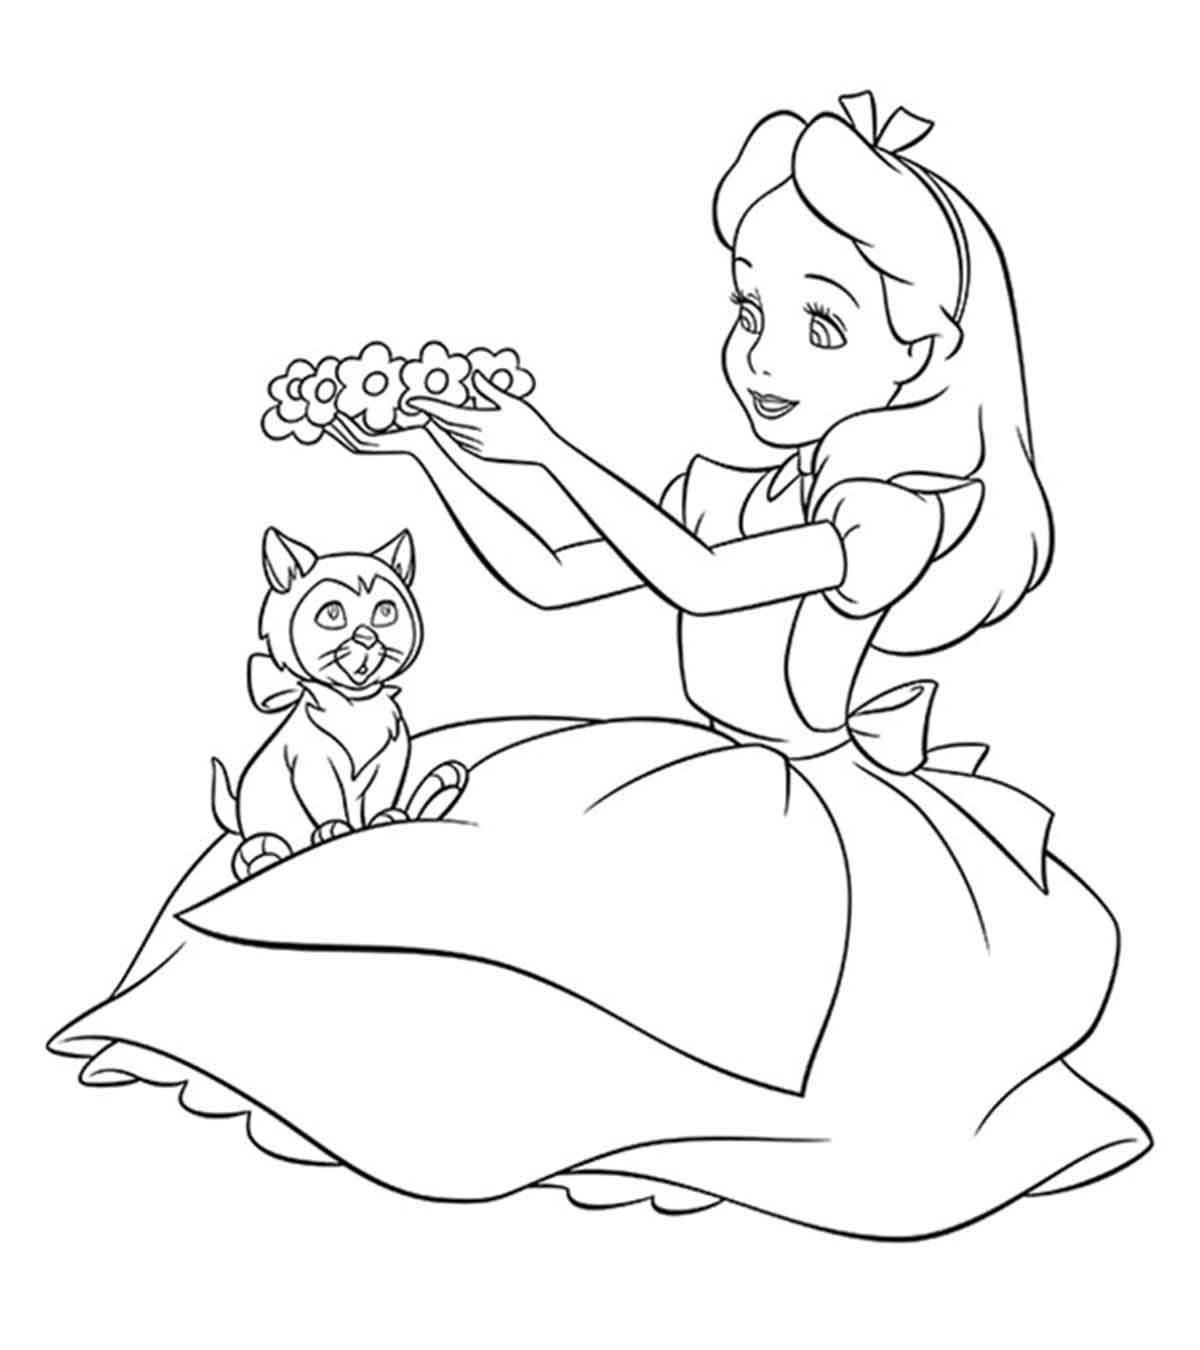 Disney Coloring Pages For Your Little Ones